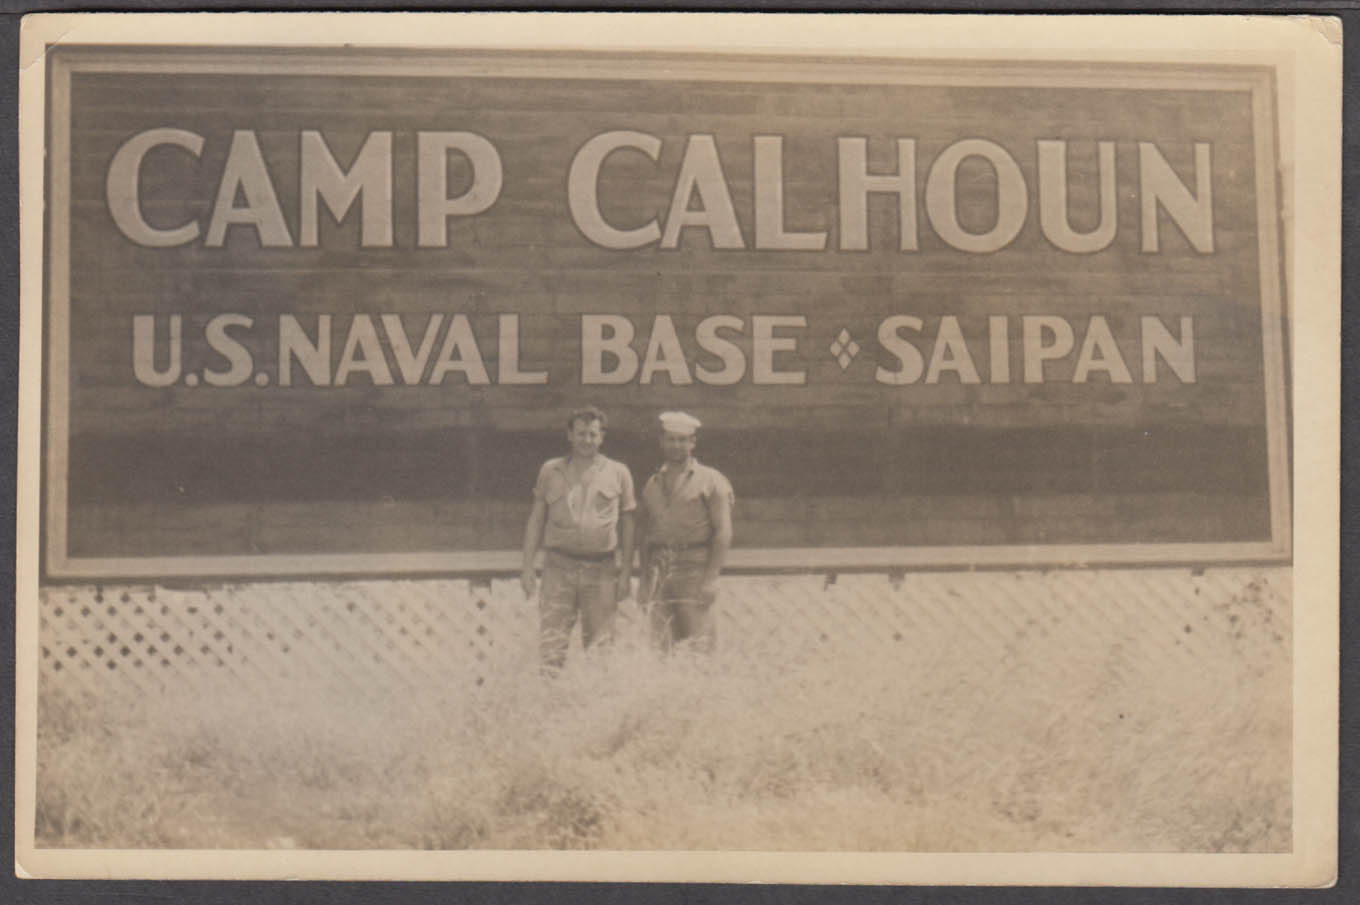 2 US Navy sailors in front of Camp Calhoun US Naval Base Saipan photo 1945